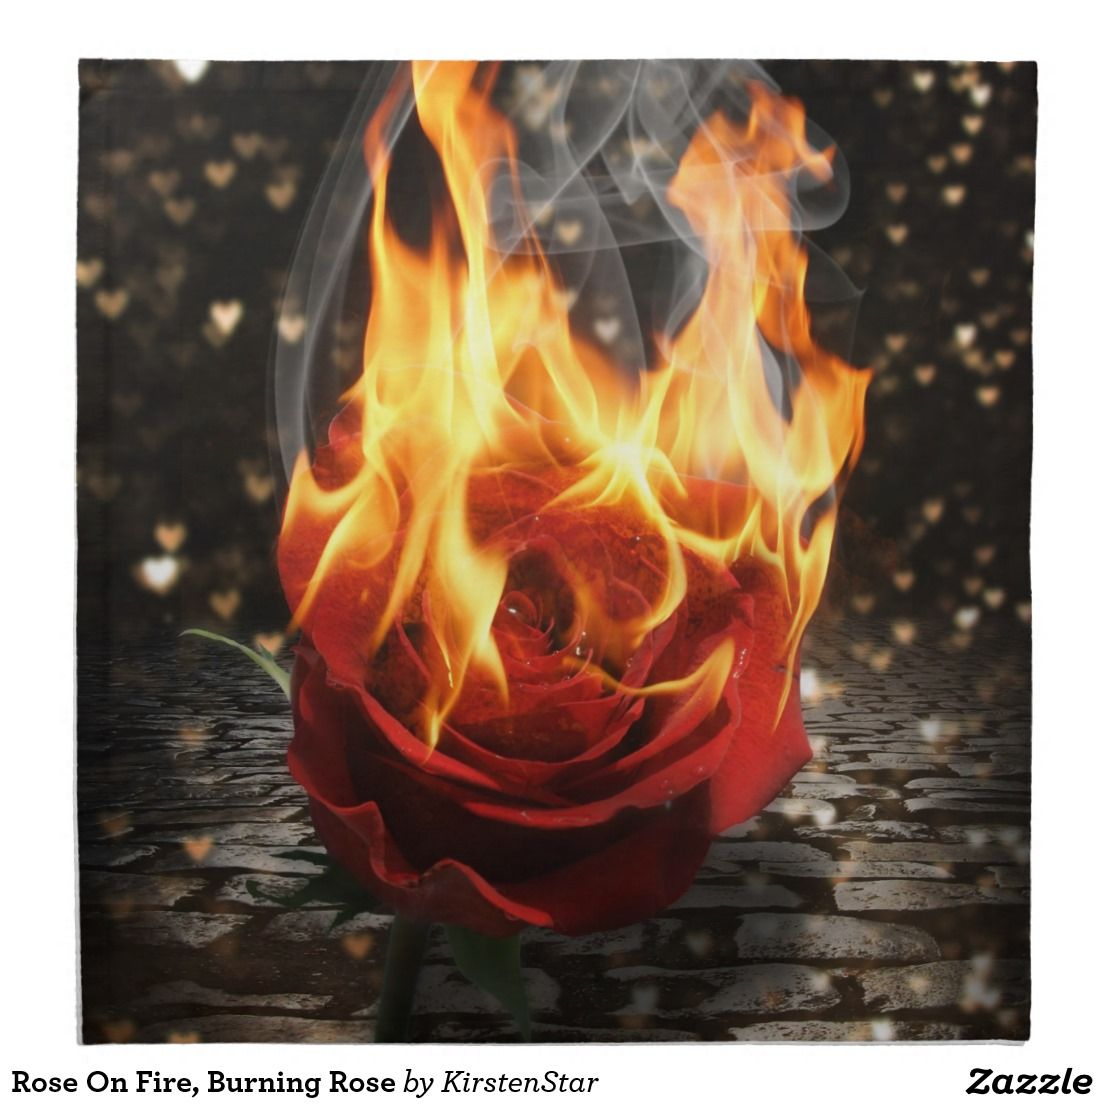 Rose On Fire Burning Rose Napkin Zazzle Com Rose On Fire Burning Rose Fire Flower